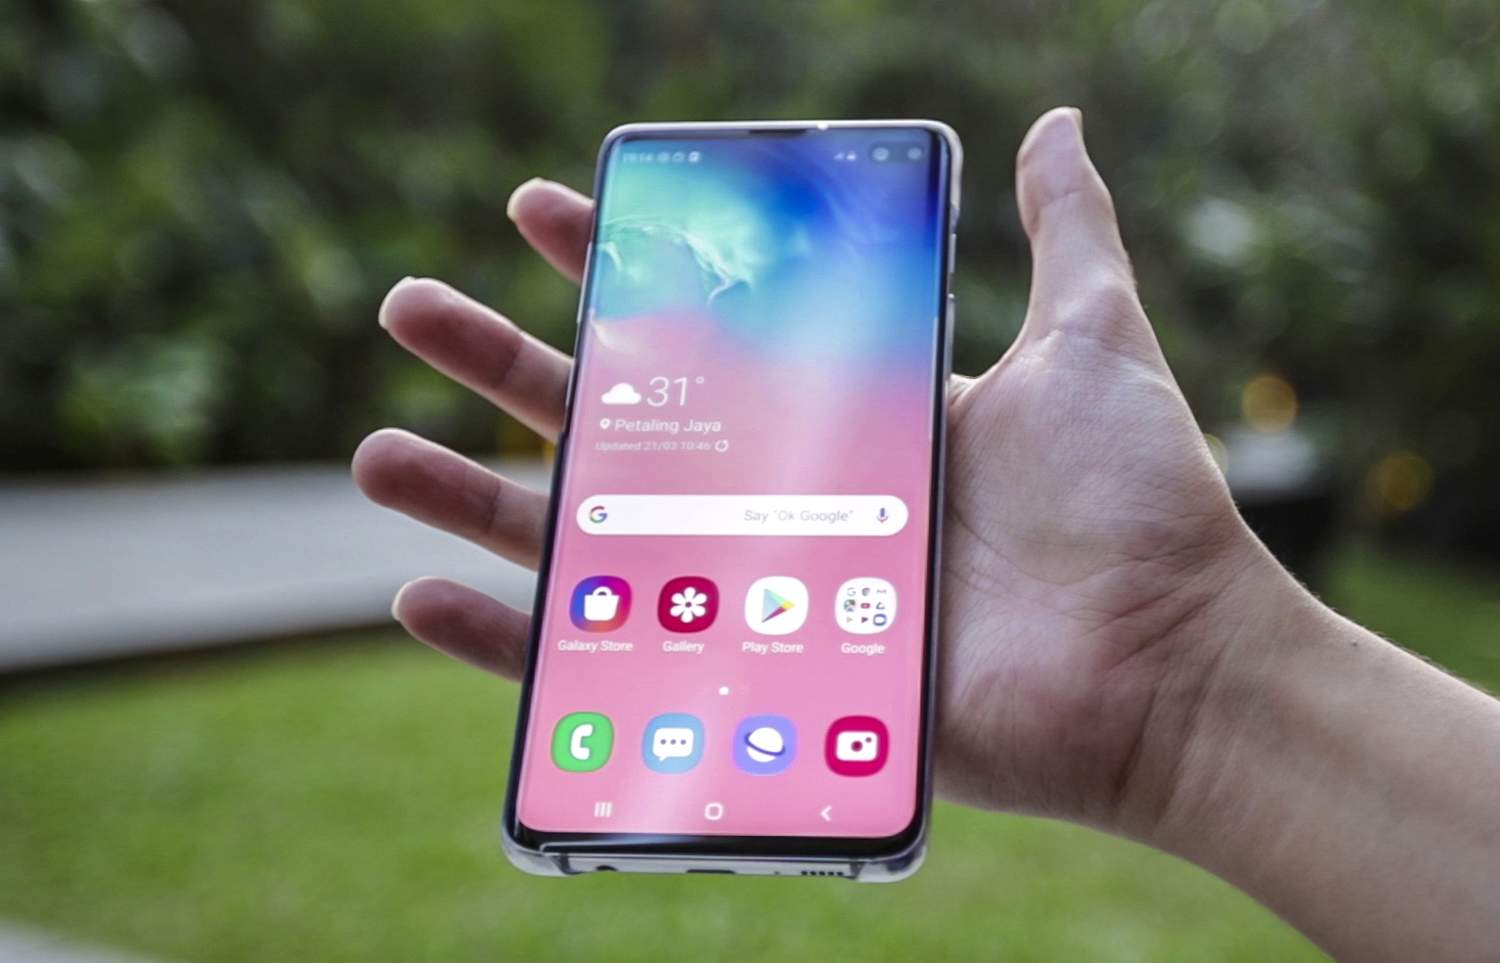 Samsung Galaxy S10 Plus (stuff.tv)